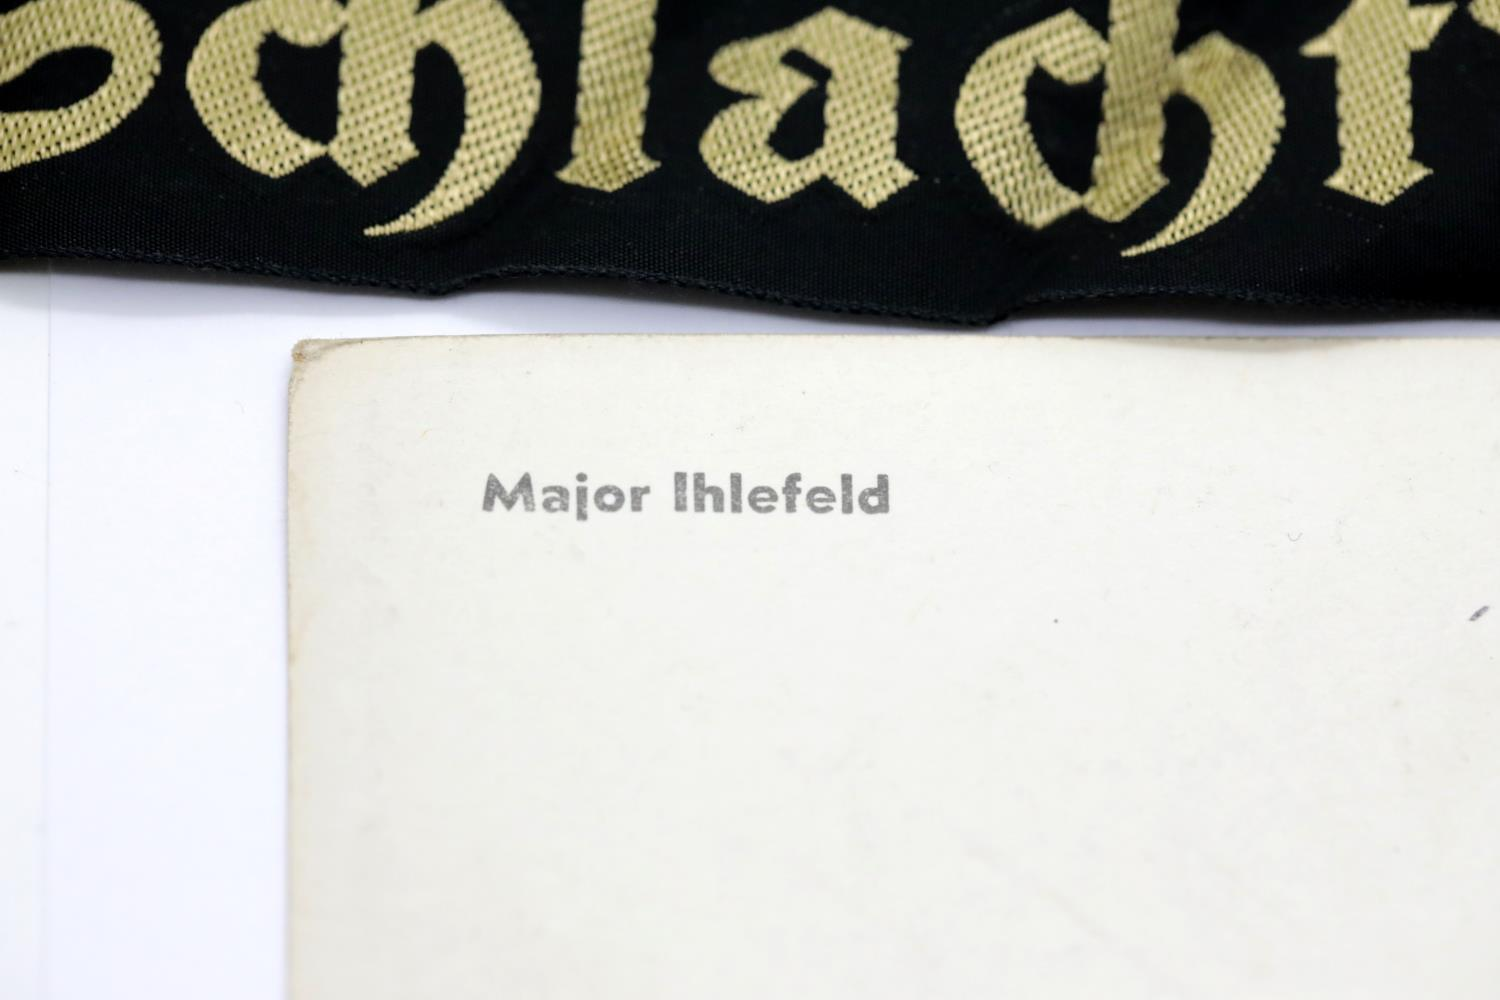 Lot 3039 - German Third Reich type photographic postcard of Major Ihlefeld, together with a Kriegsmarine hat